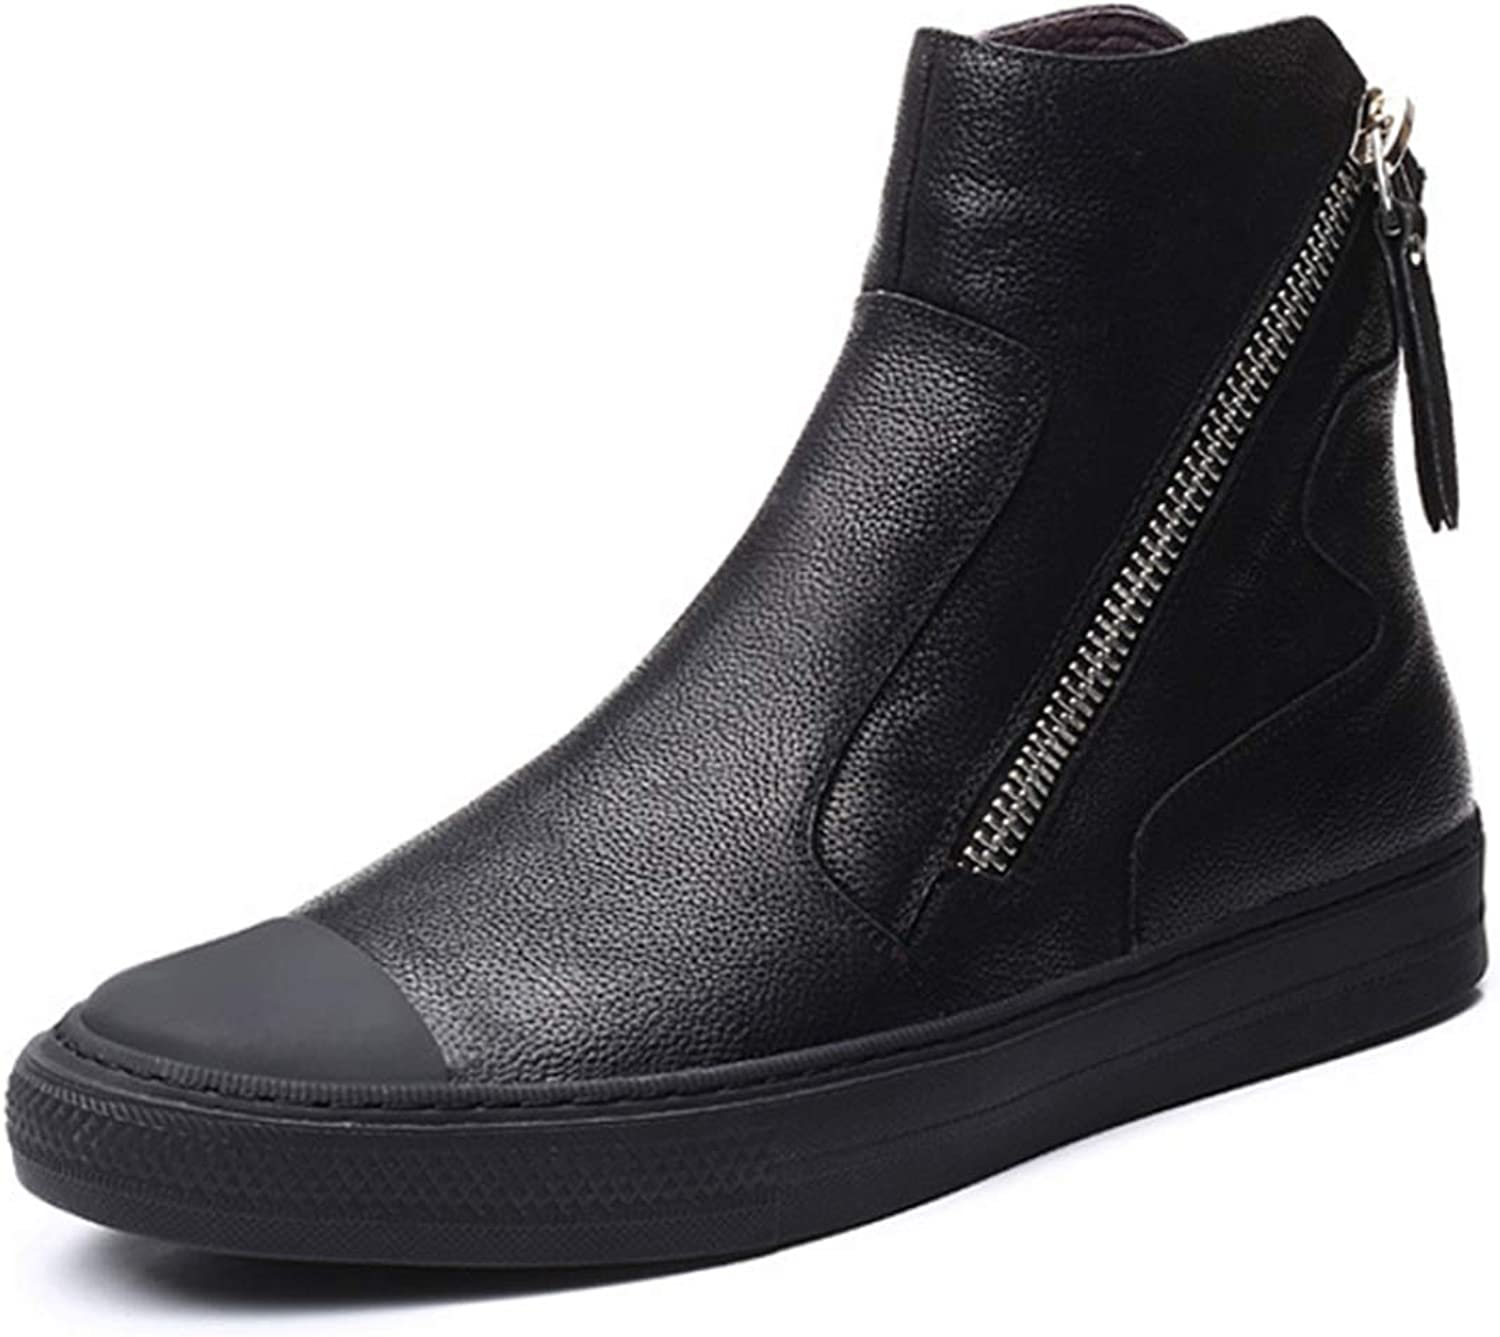 Men's Fashion Martin Boots High-top Casual Sports shoes Ankle Boots